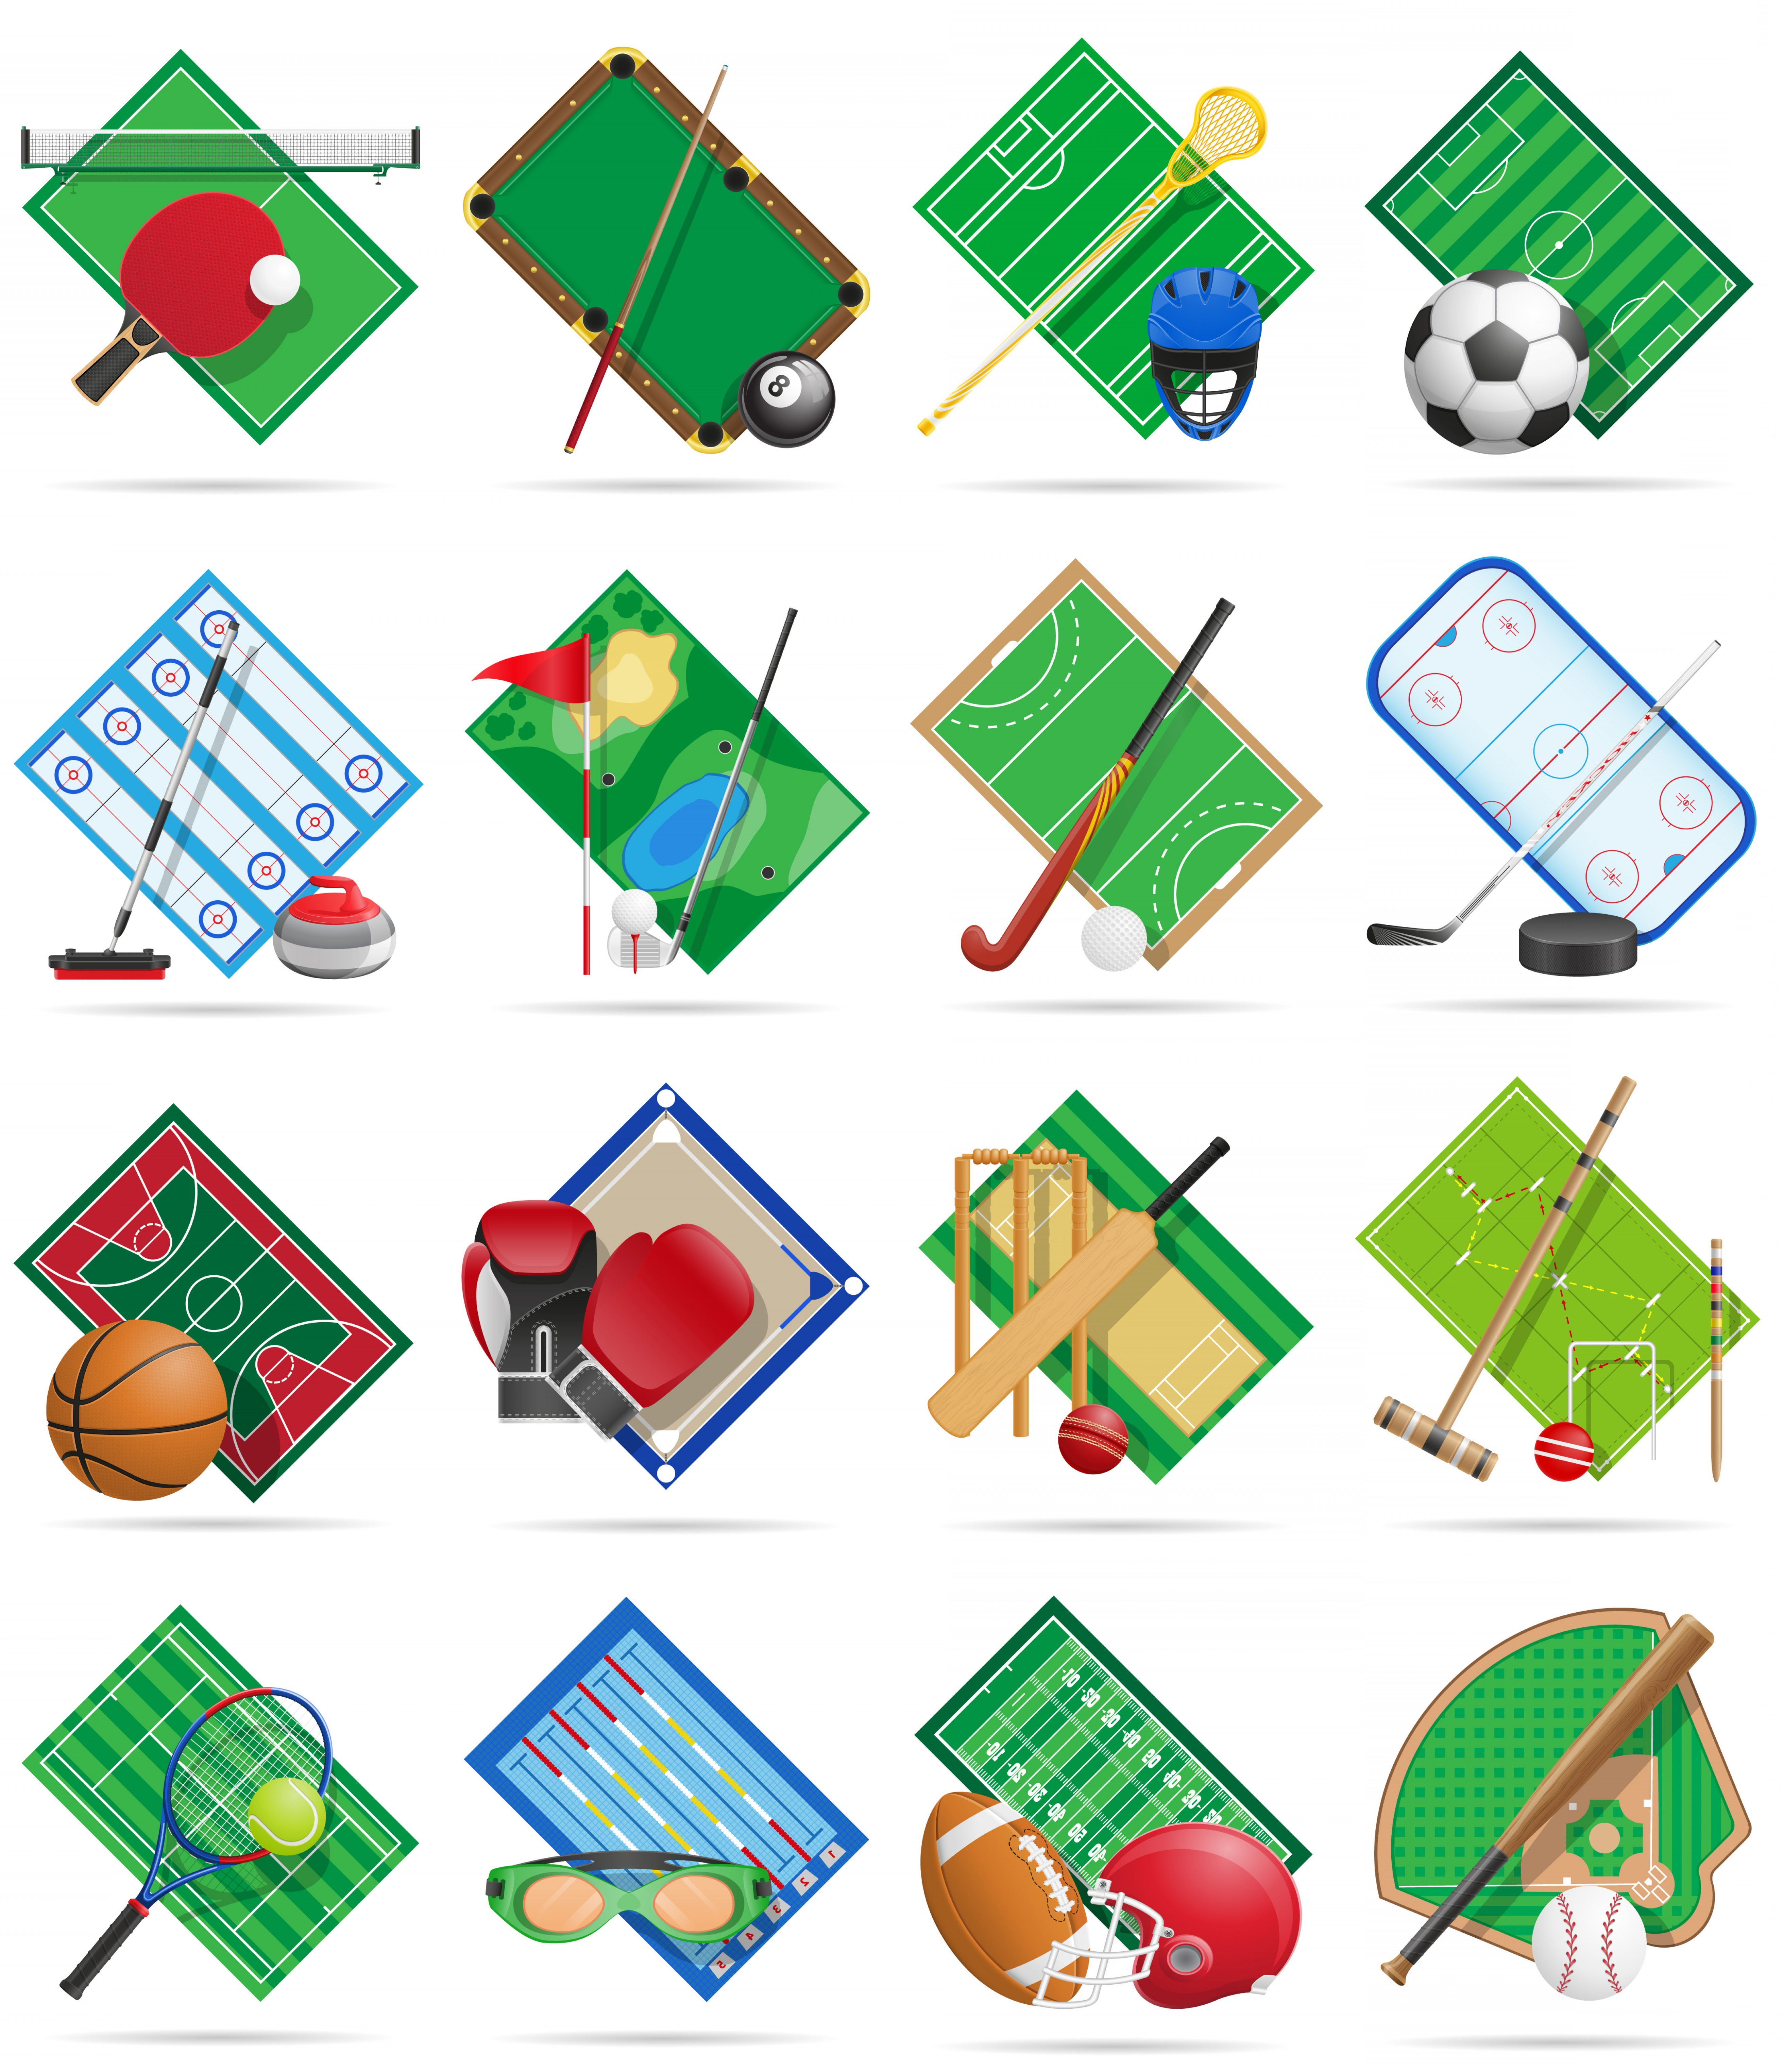 Sport Vector Art Games: Set Court Playground Stadium And Field For Sports Games Flat Icons Vector Illustration